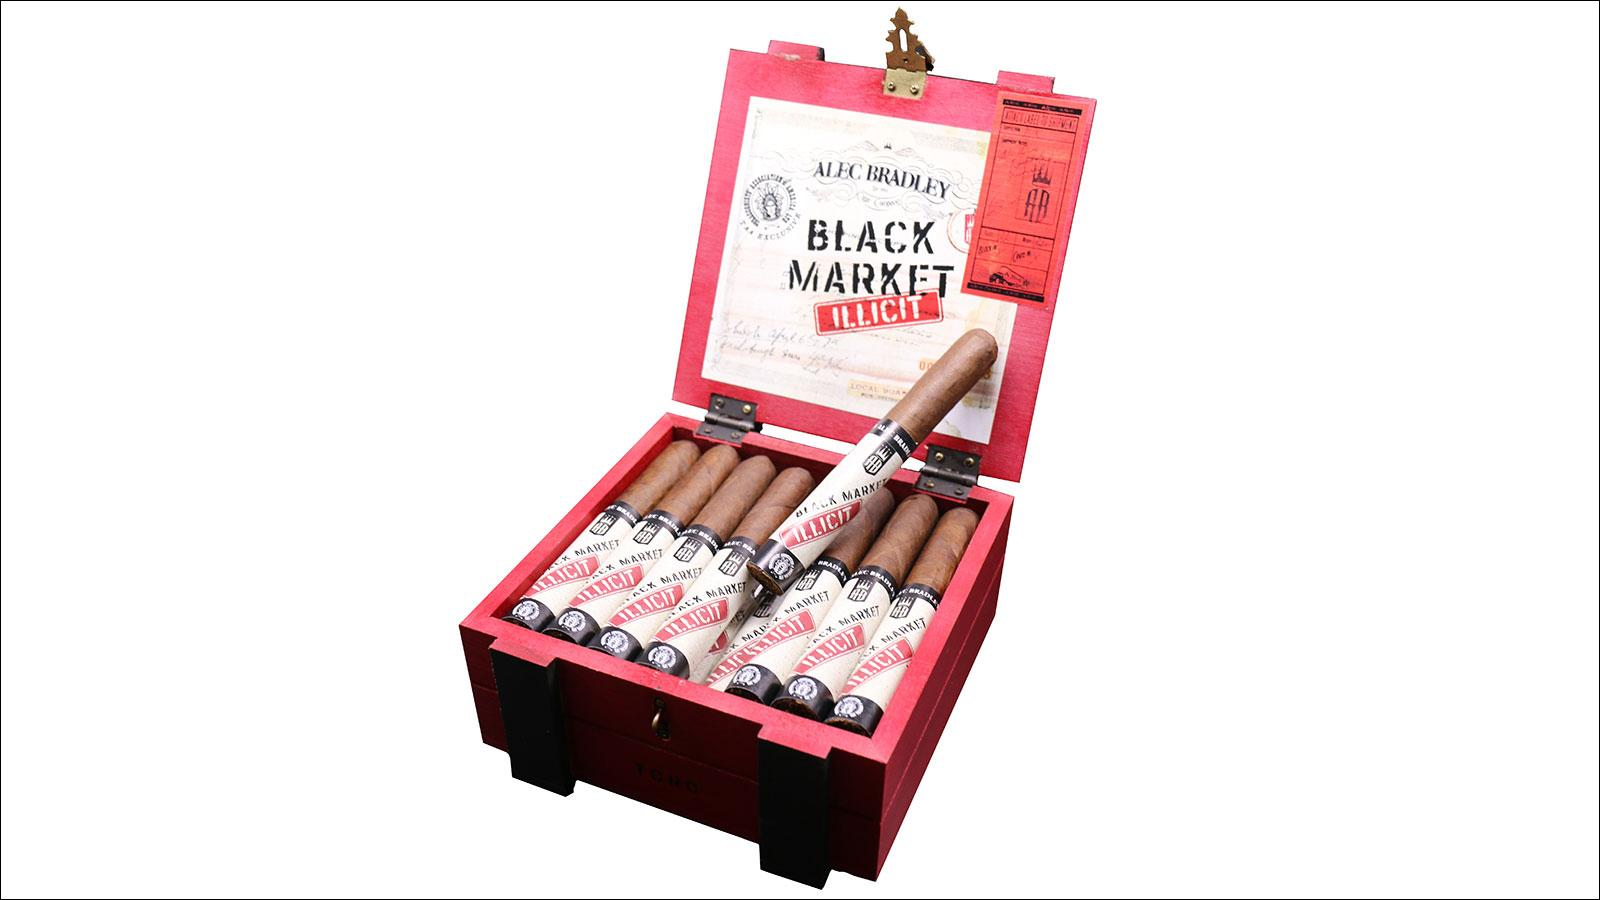 Alec Bradley's TAA Exclusive Will Be A New Black Market